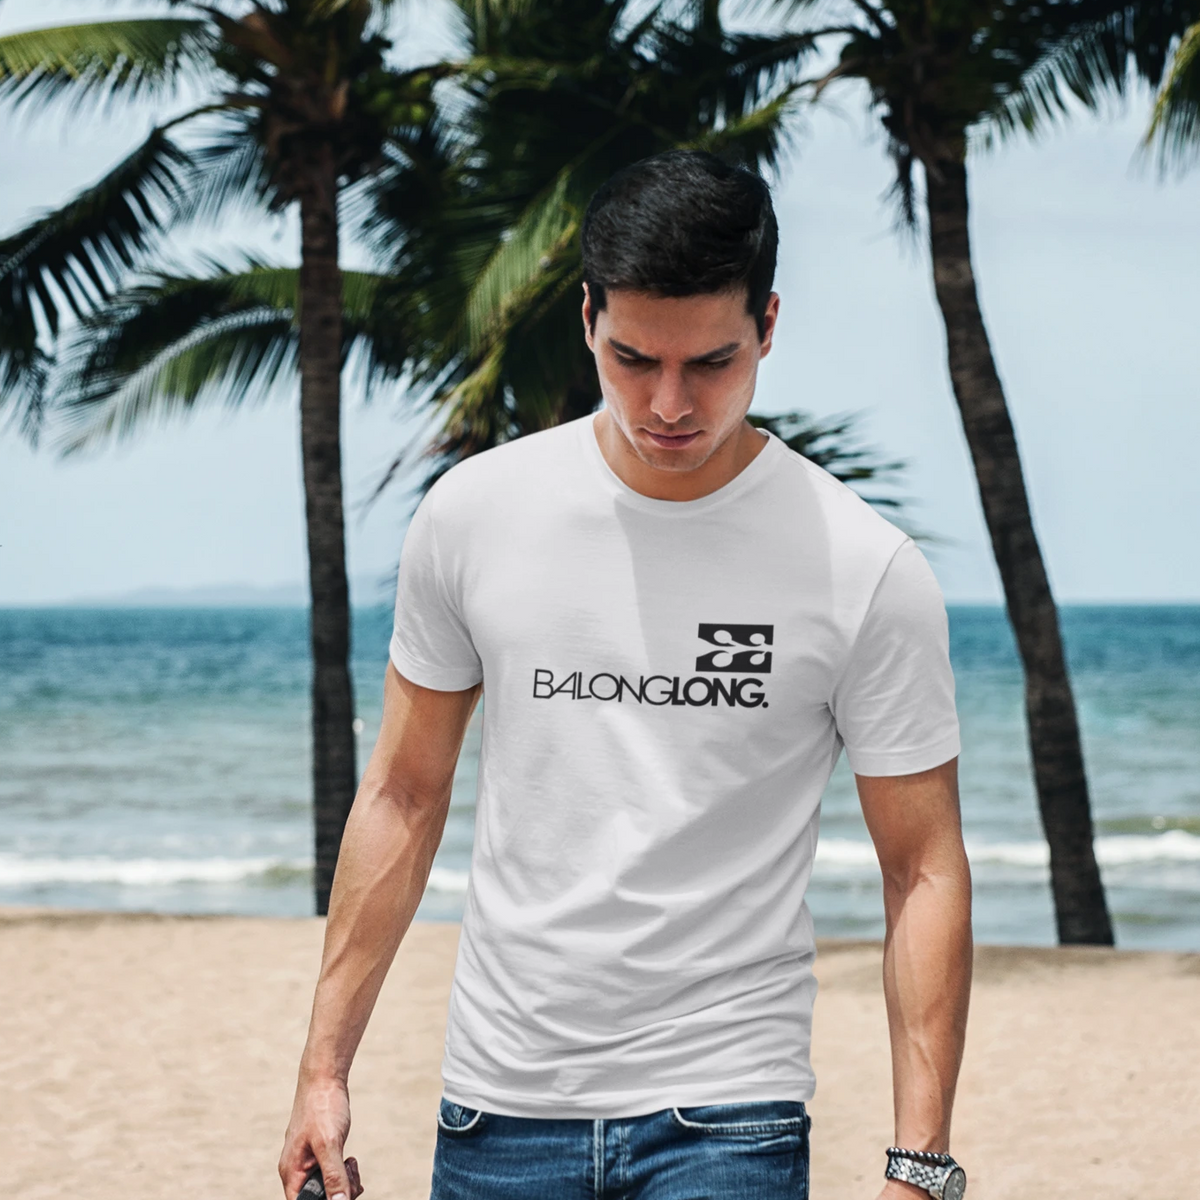 Balonglong Short Sleeve T-shirt